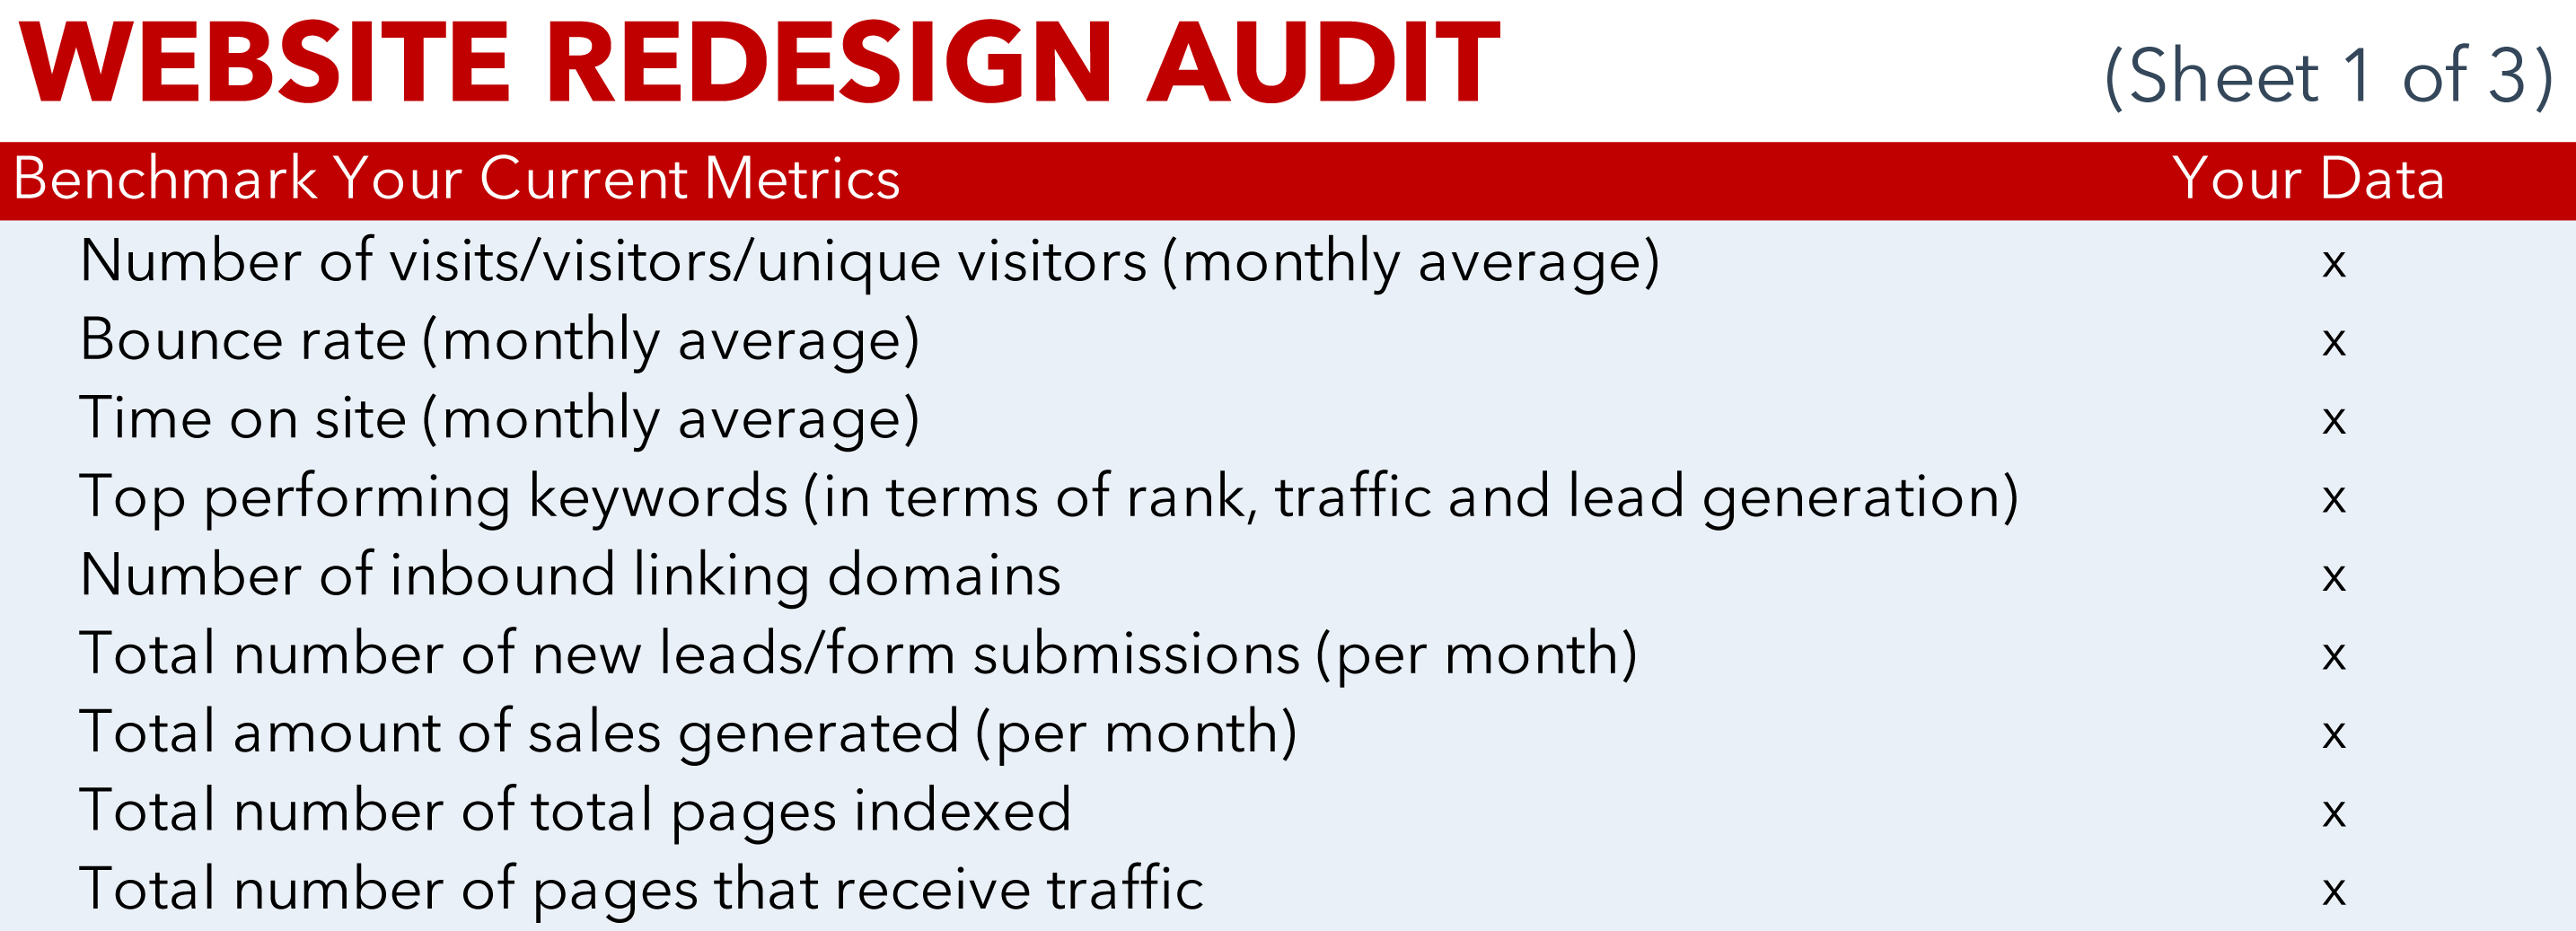 JONES Website Redesign Audit Template